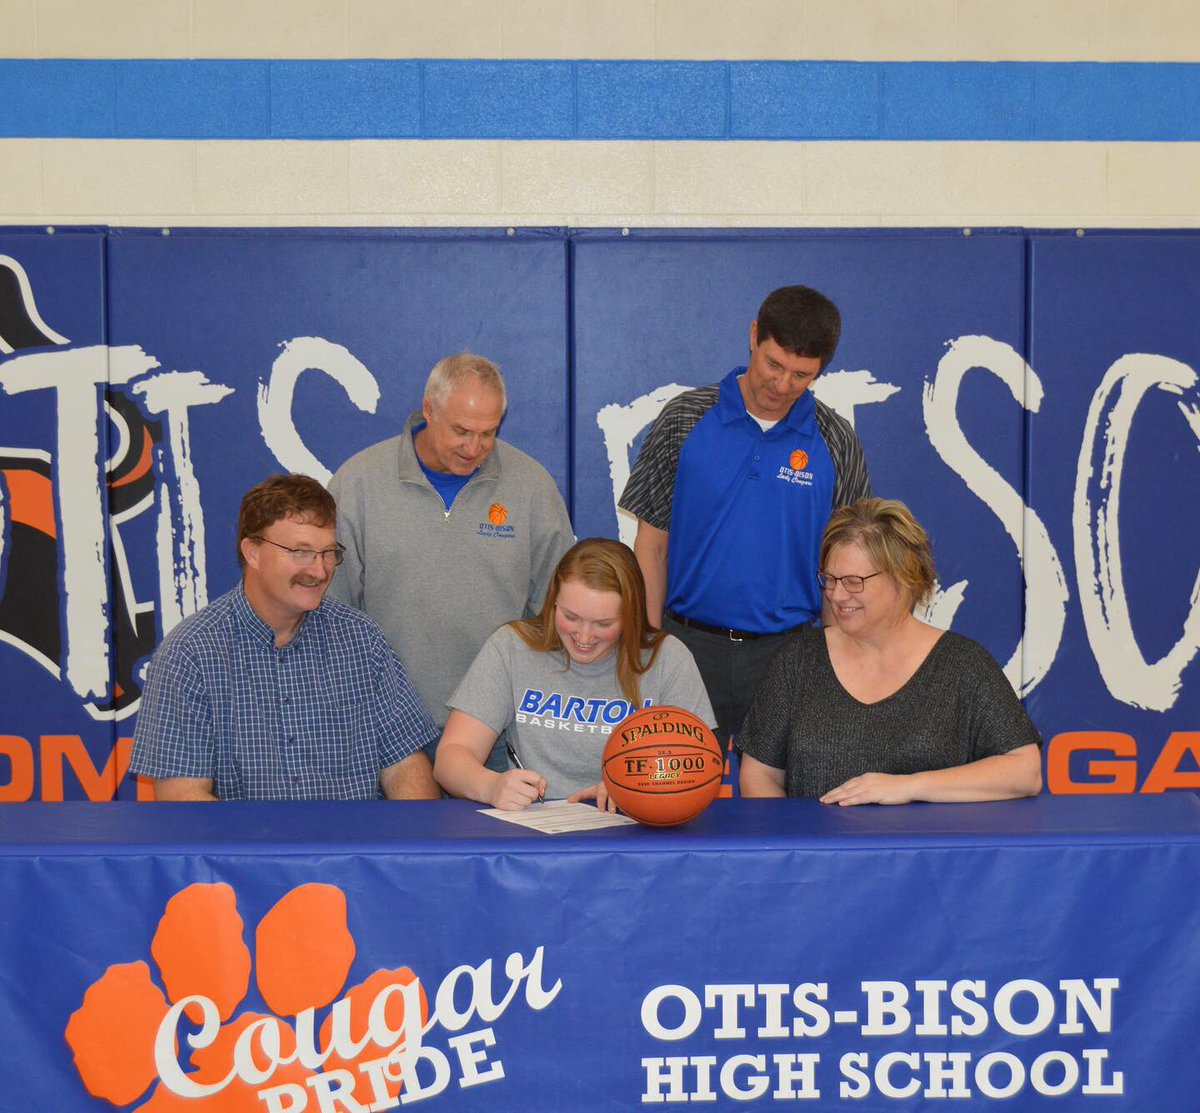 Congratulations to Cora Anderson with the signing to play basketball at Barton County College next year.